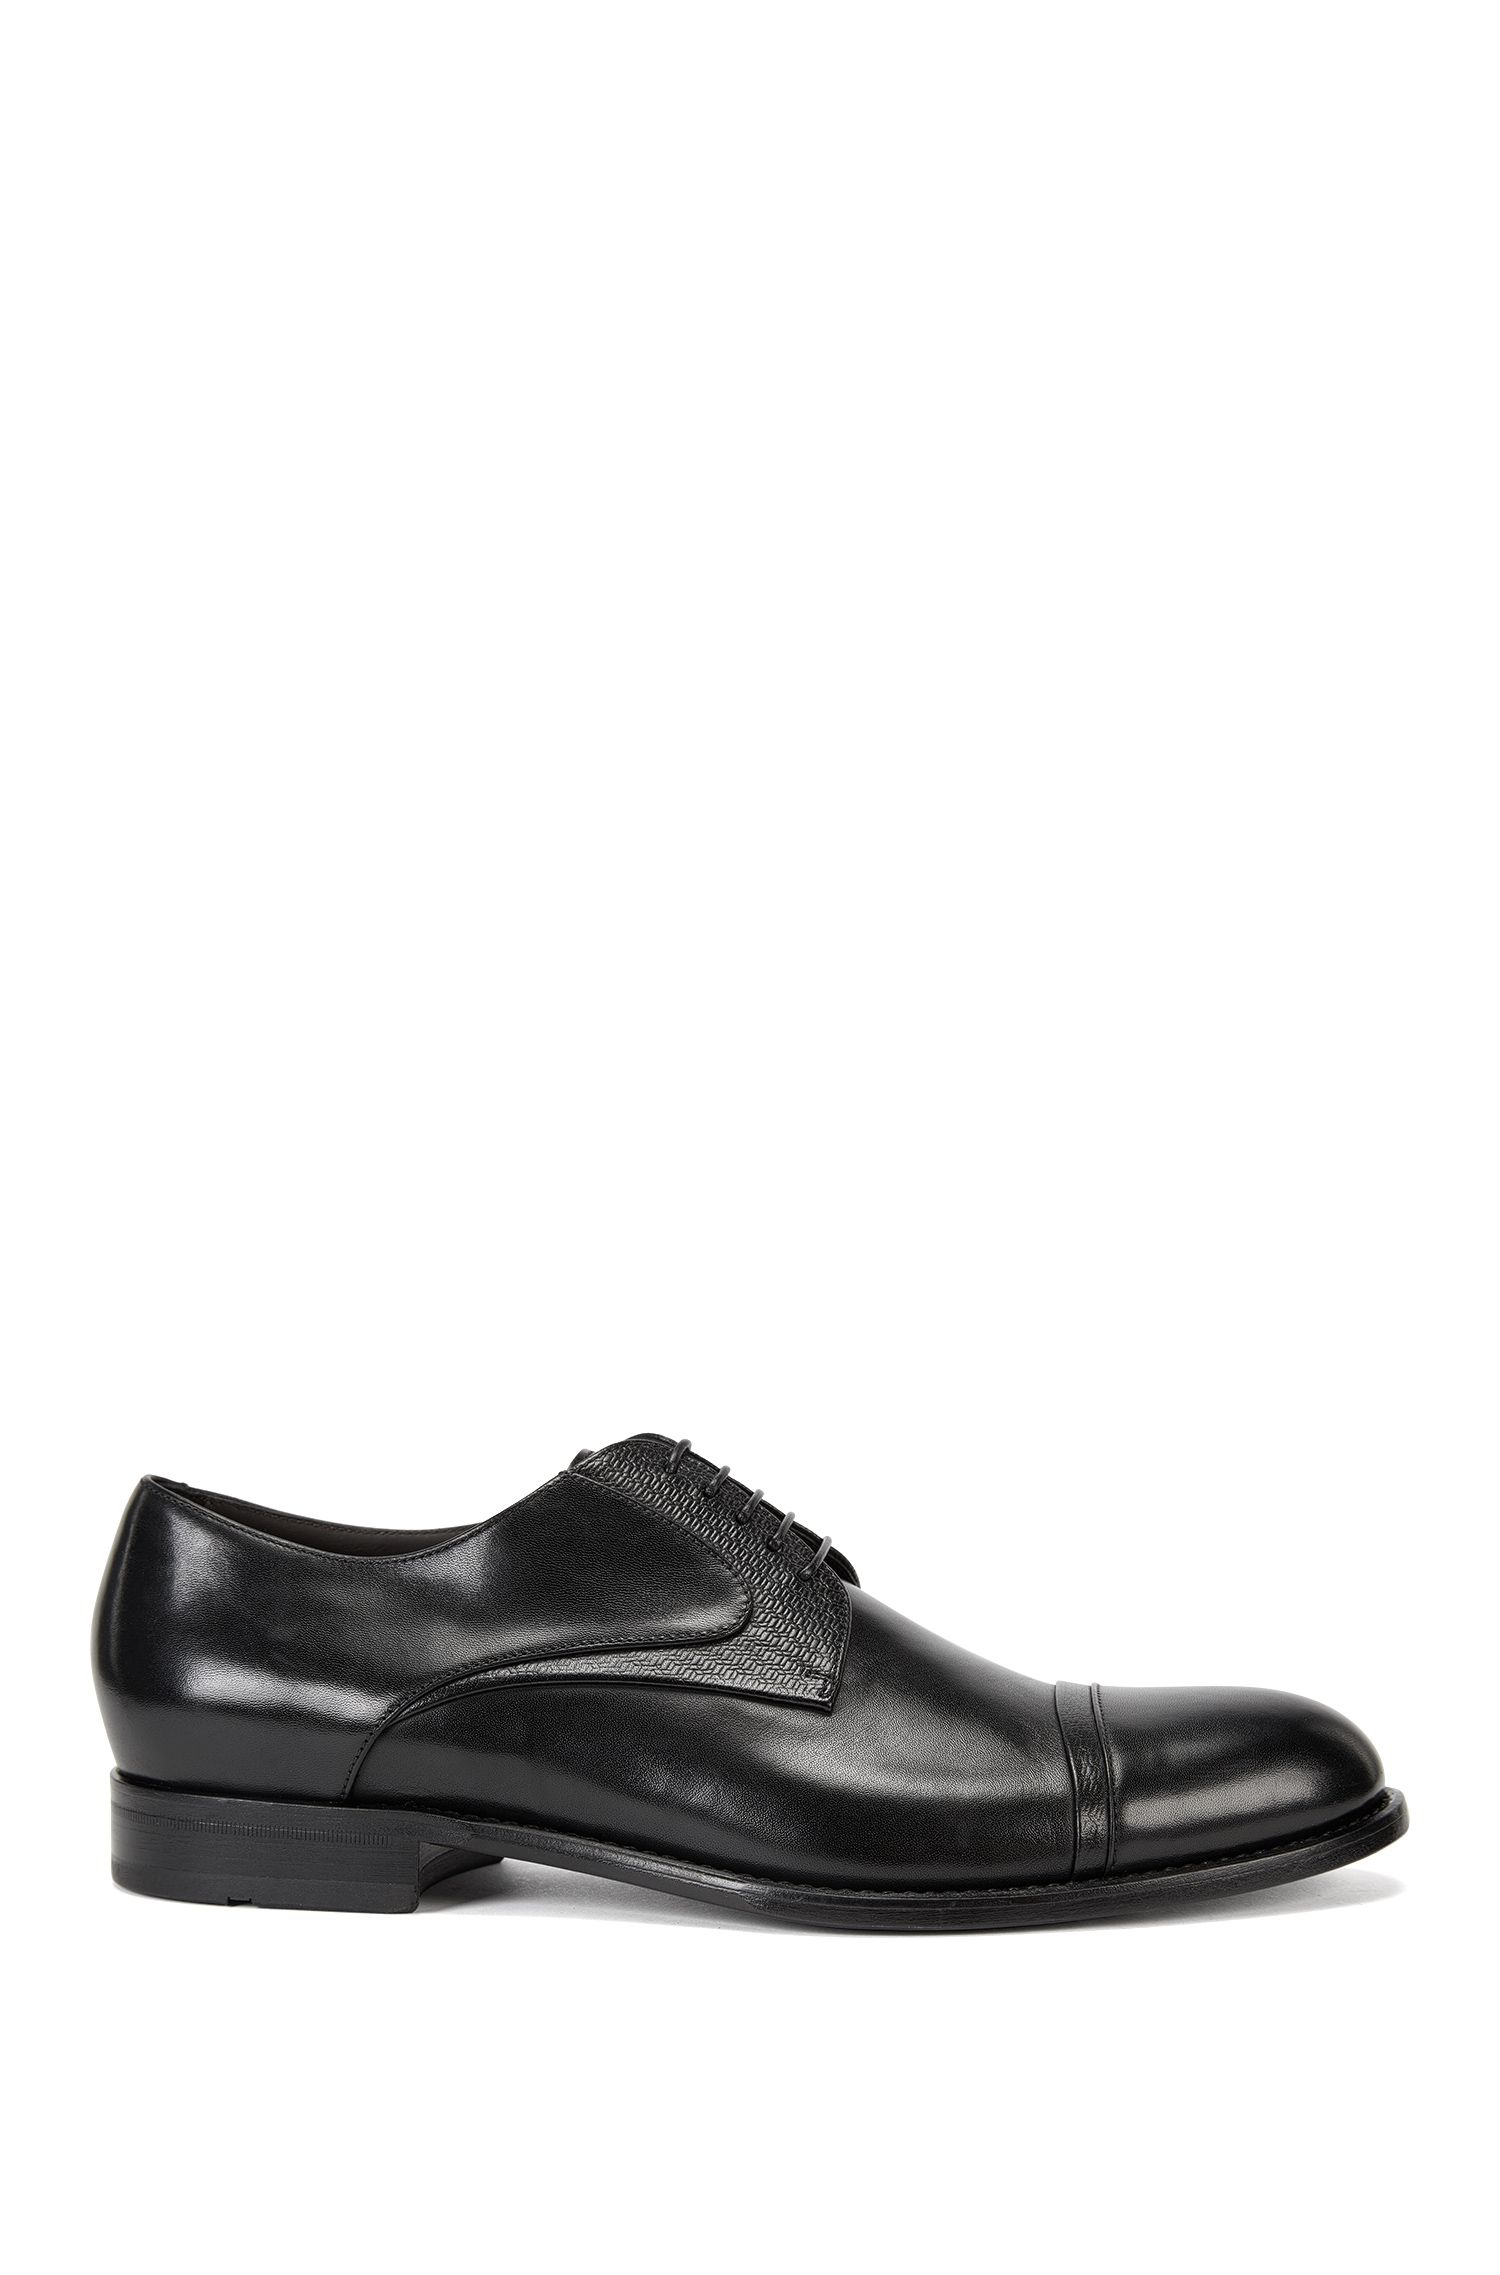 Leather Derby shoes with embossed leather